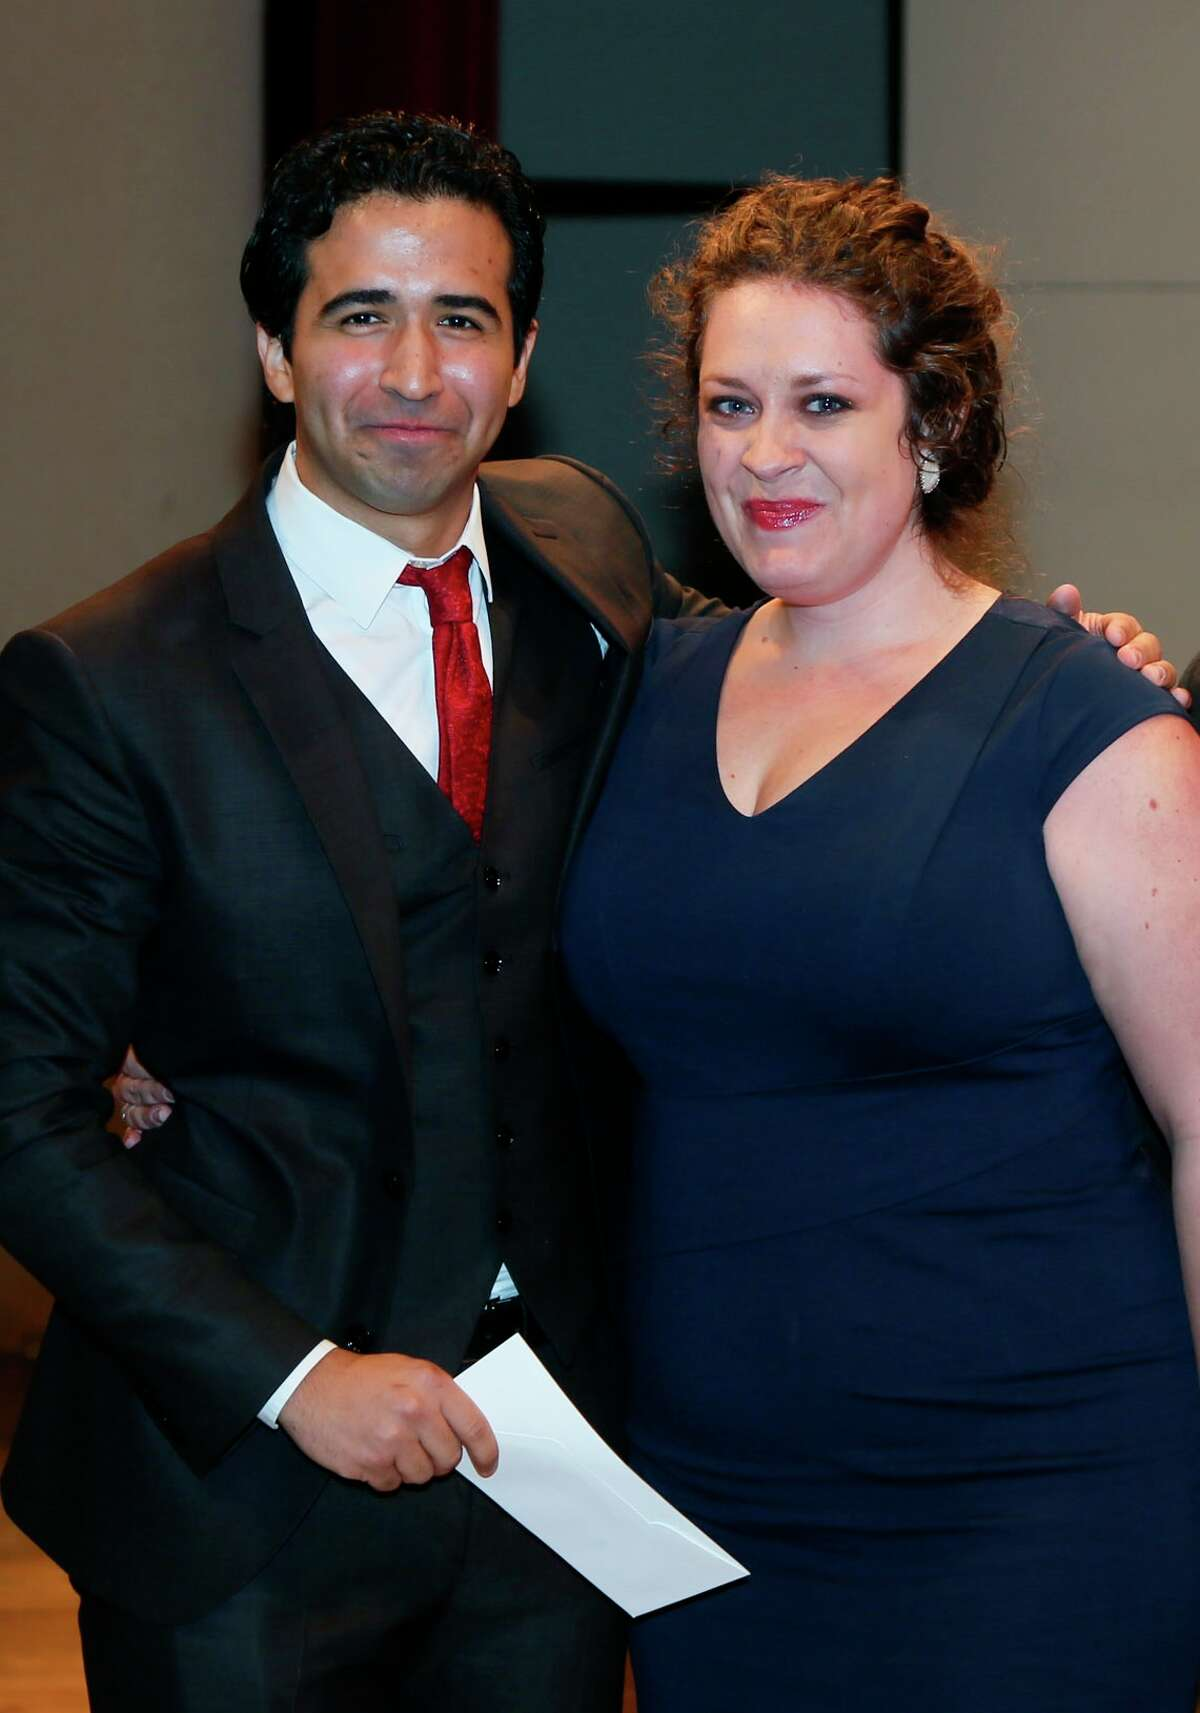 Tenor Rafael Moras, a Rice University graduate student, and soprano Natalie Cummings, a soprano from Lakeway, will compete in New York in the semifinals of the Metropolitan Opera National Council Auditions.